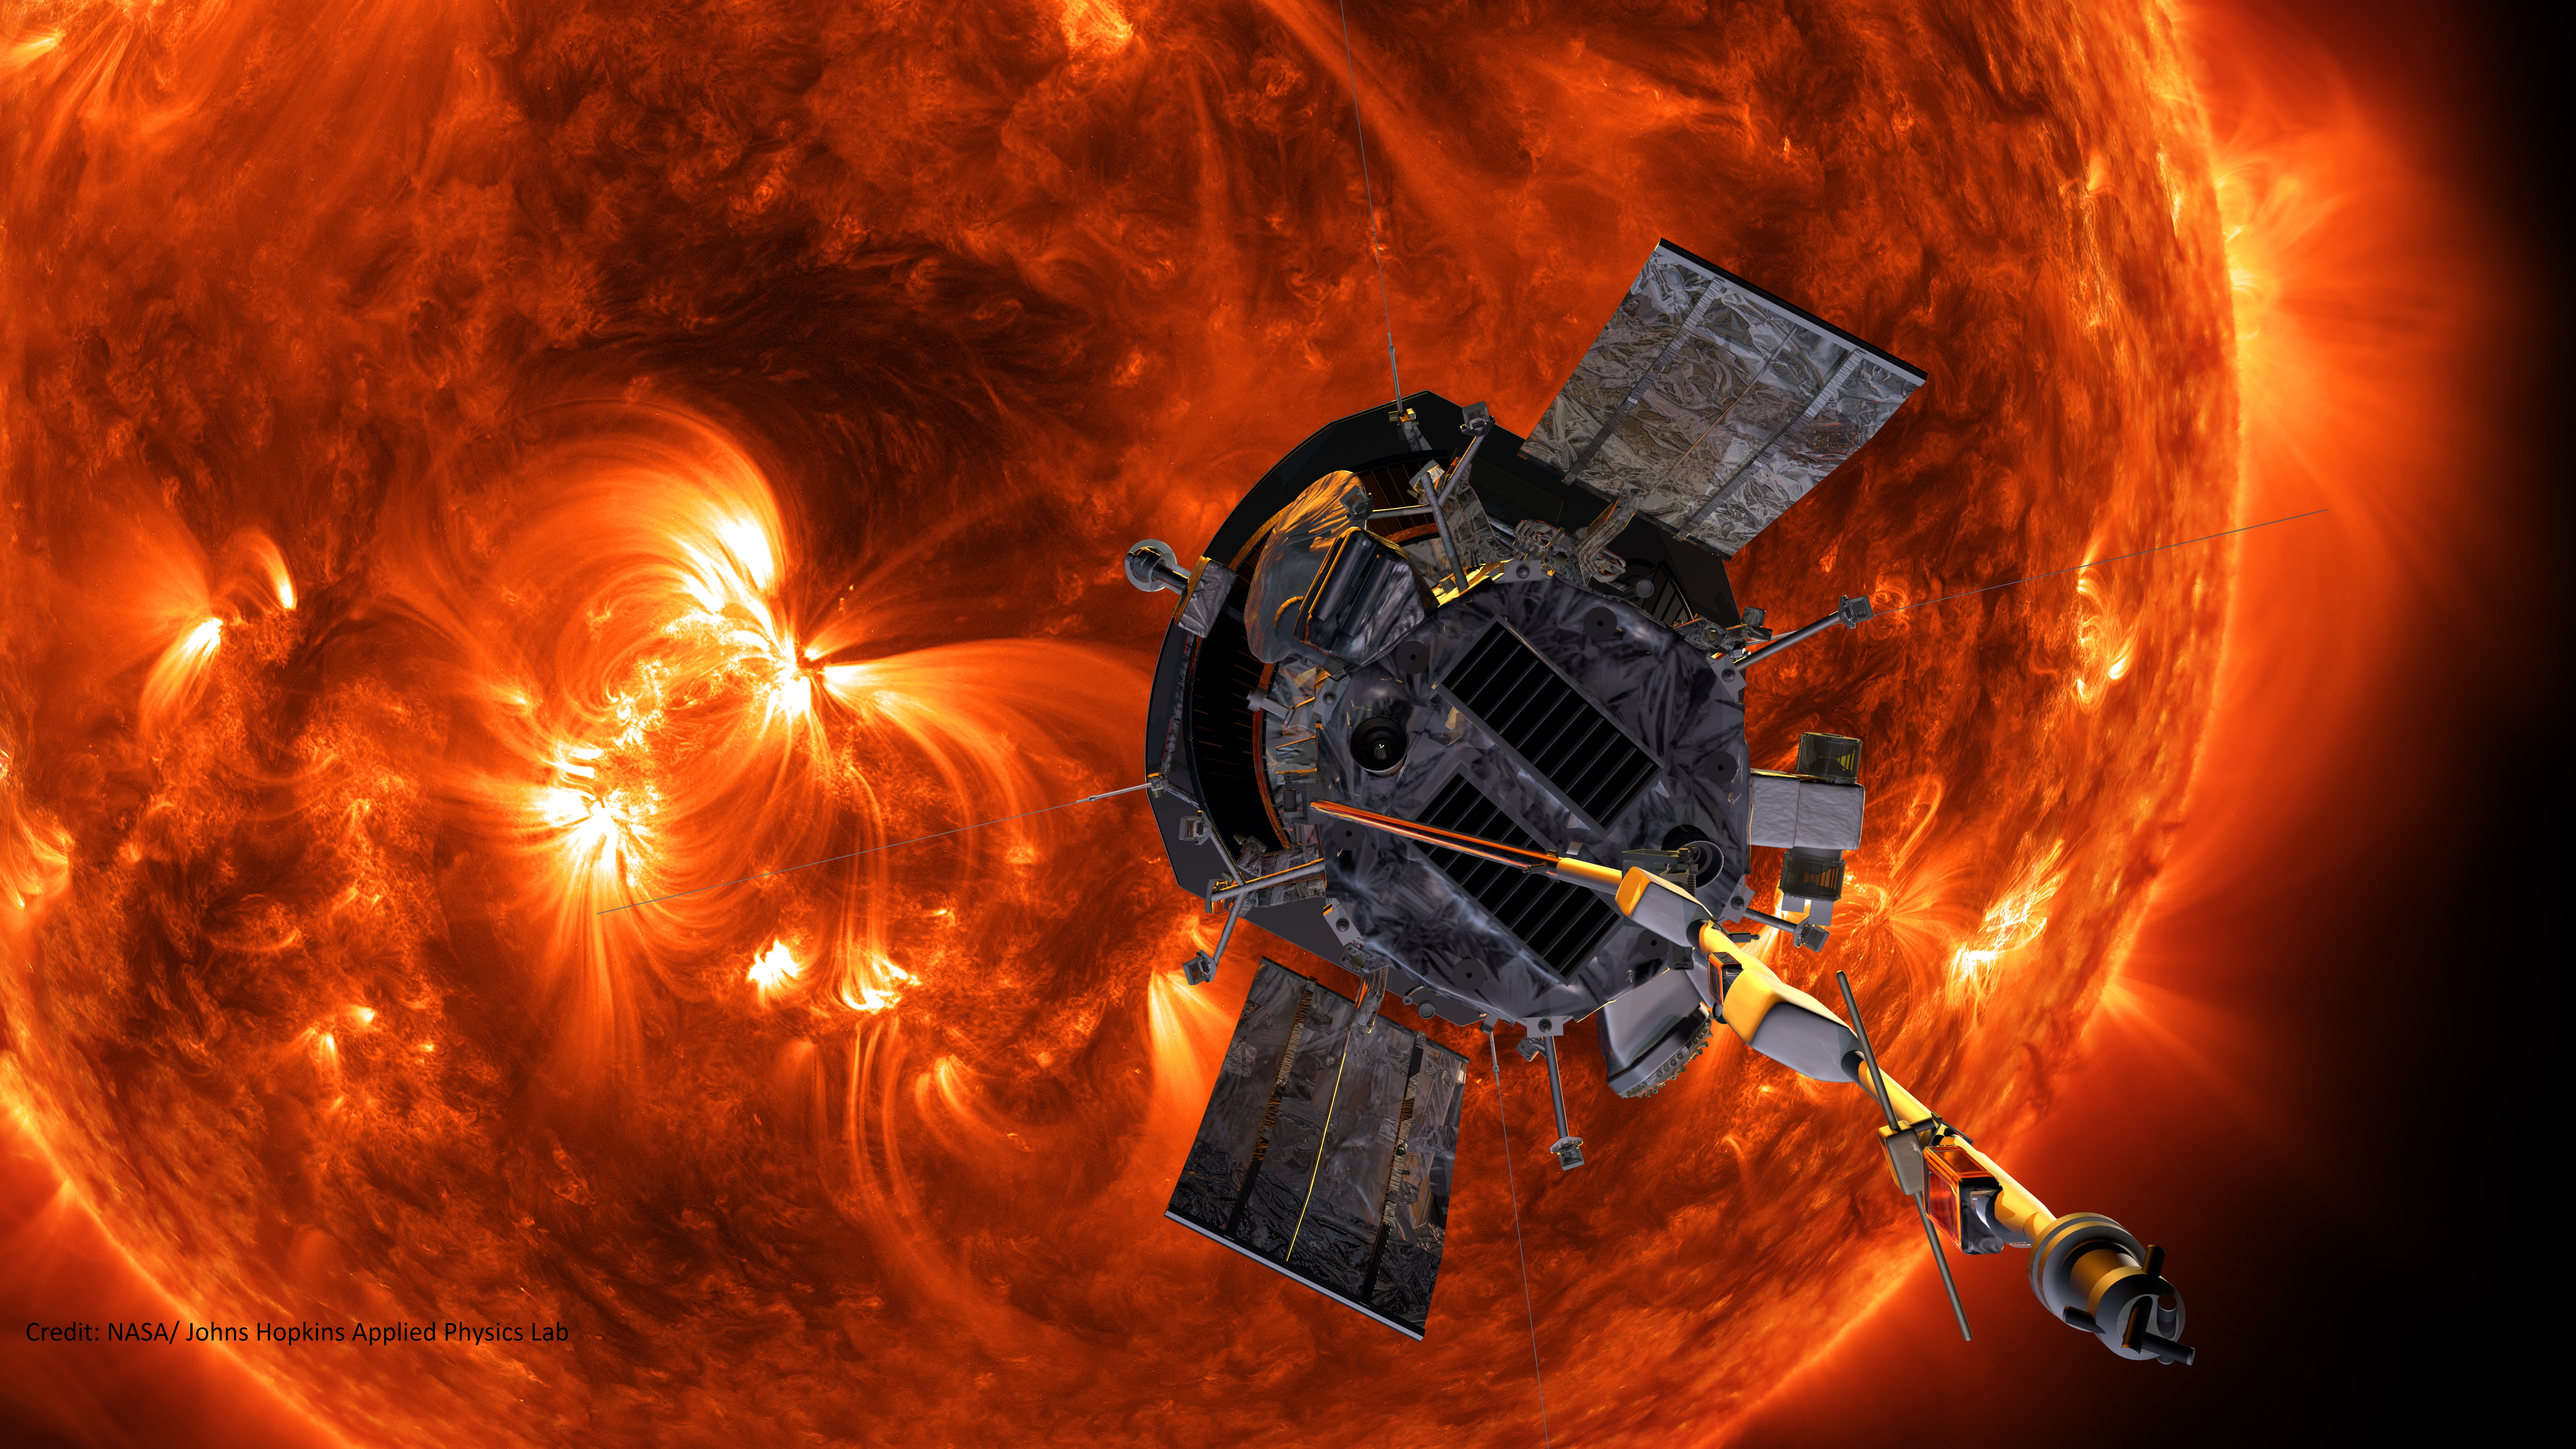 Parker Solar Probe - Credit NASA/John Hopkins Applied Physics Lab